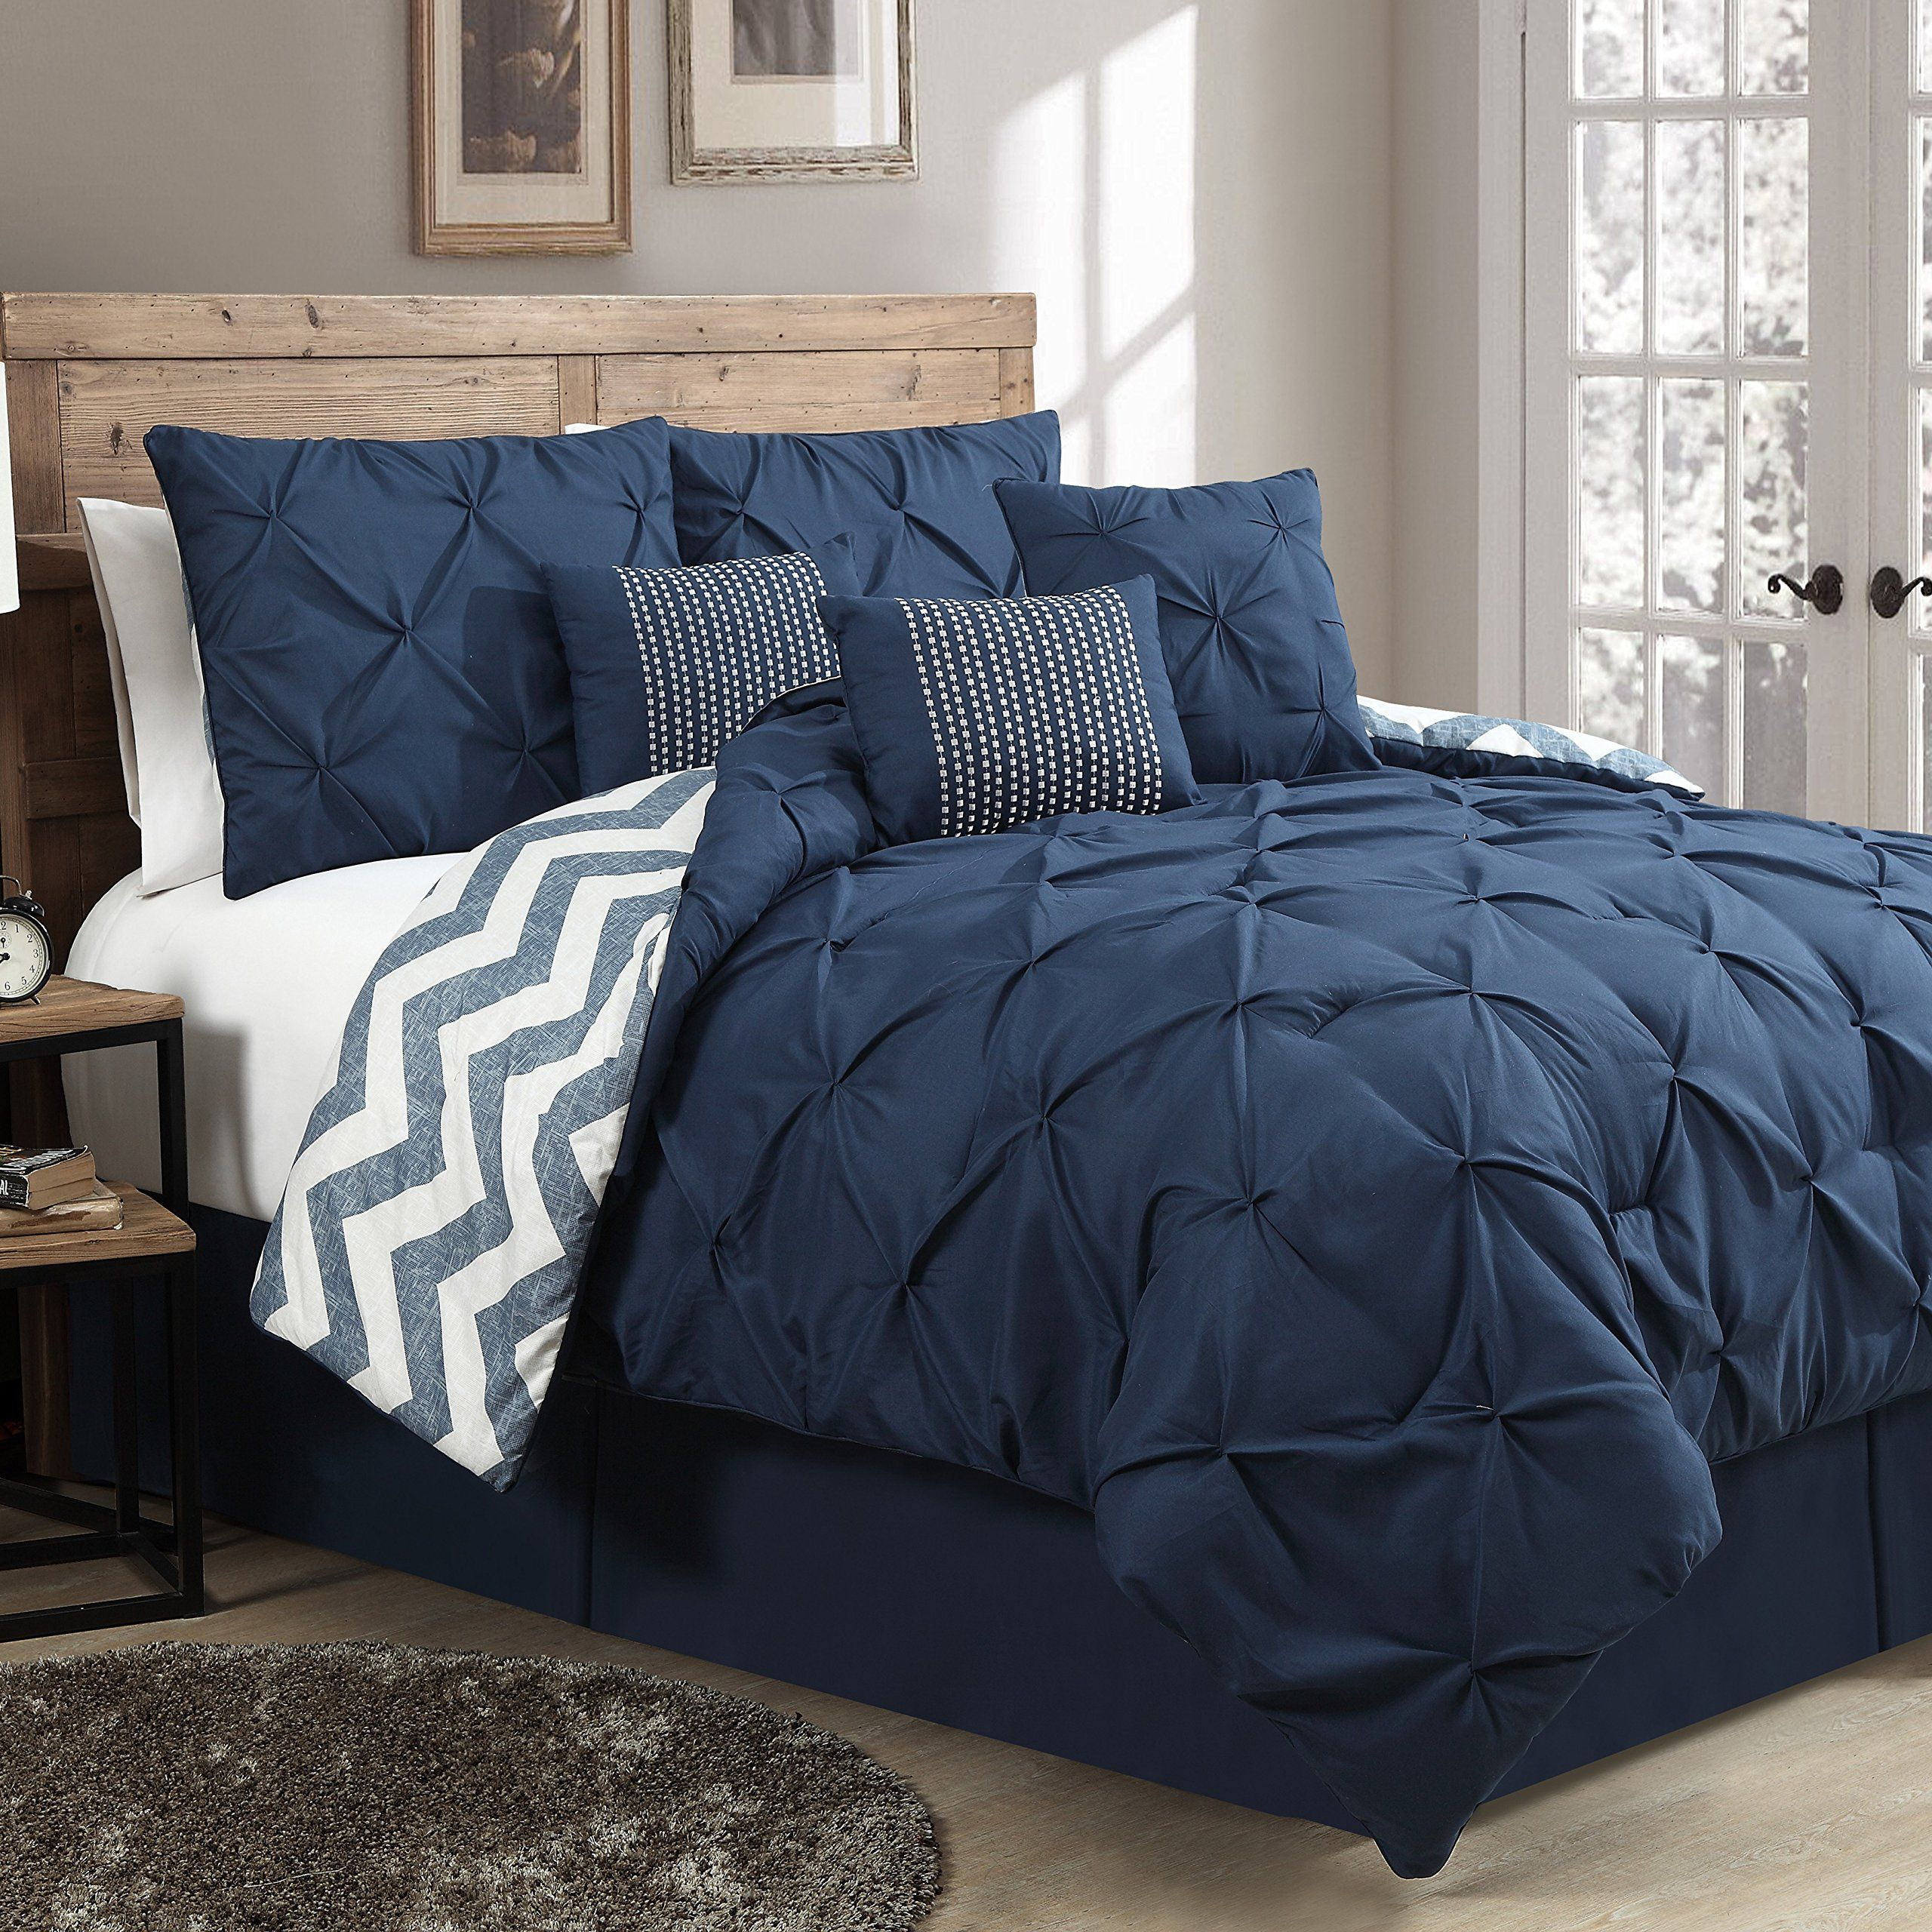 piece soft super queen wrinkle home pinch unique amazon com comforter set fade dp lucilla necessary no pleat ironing resistant free